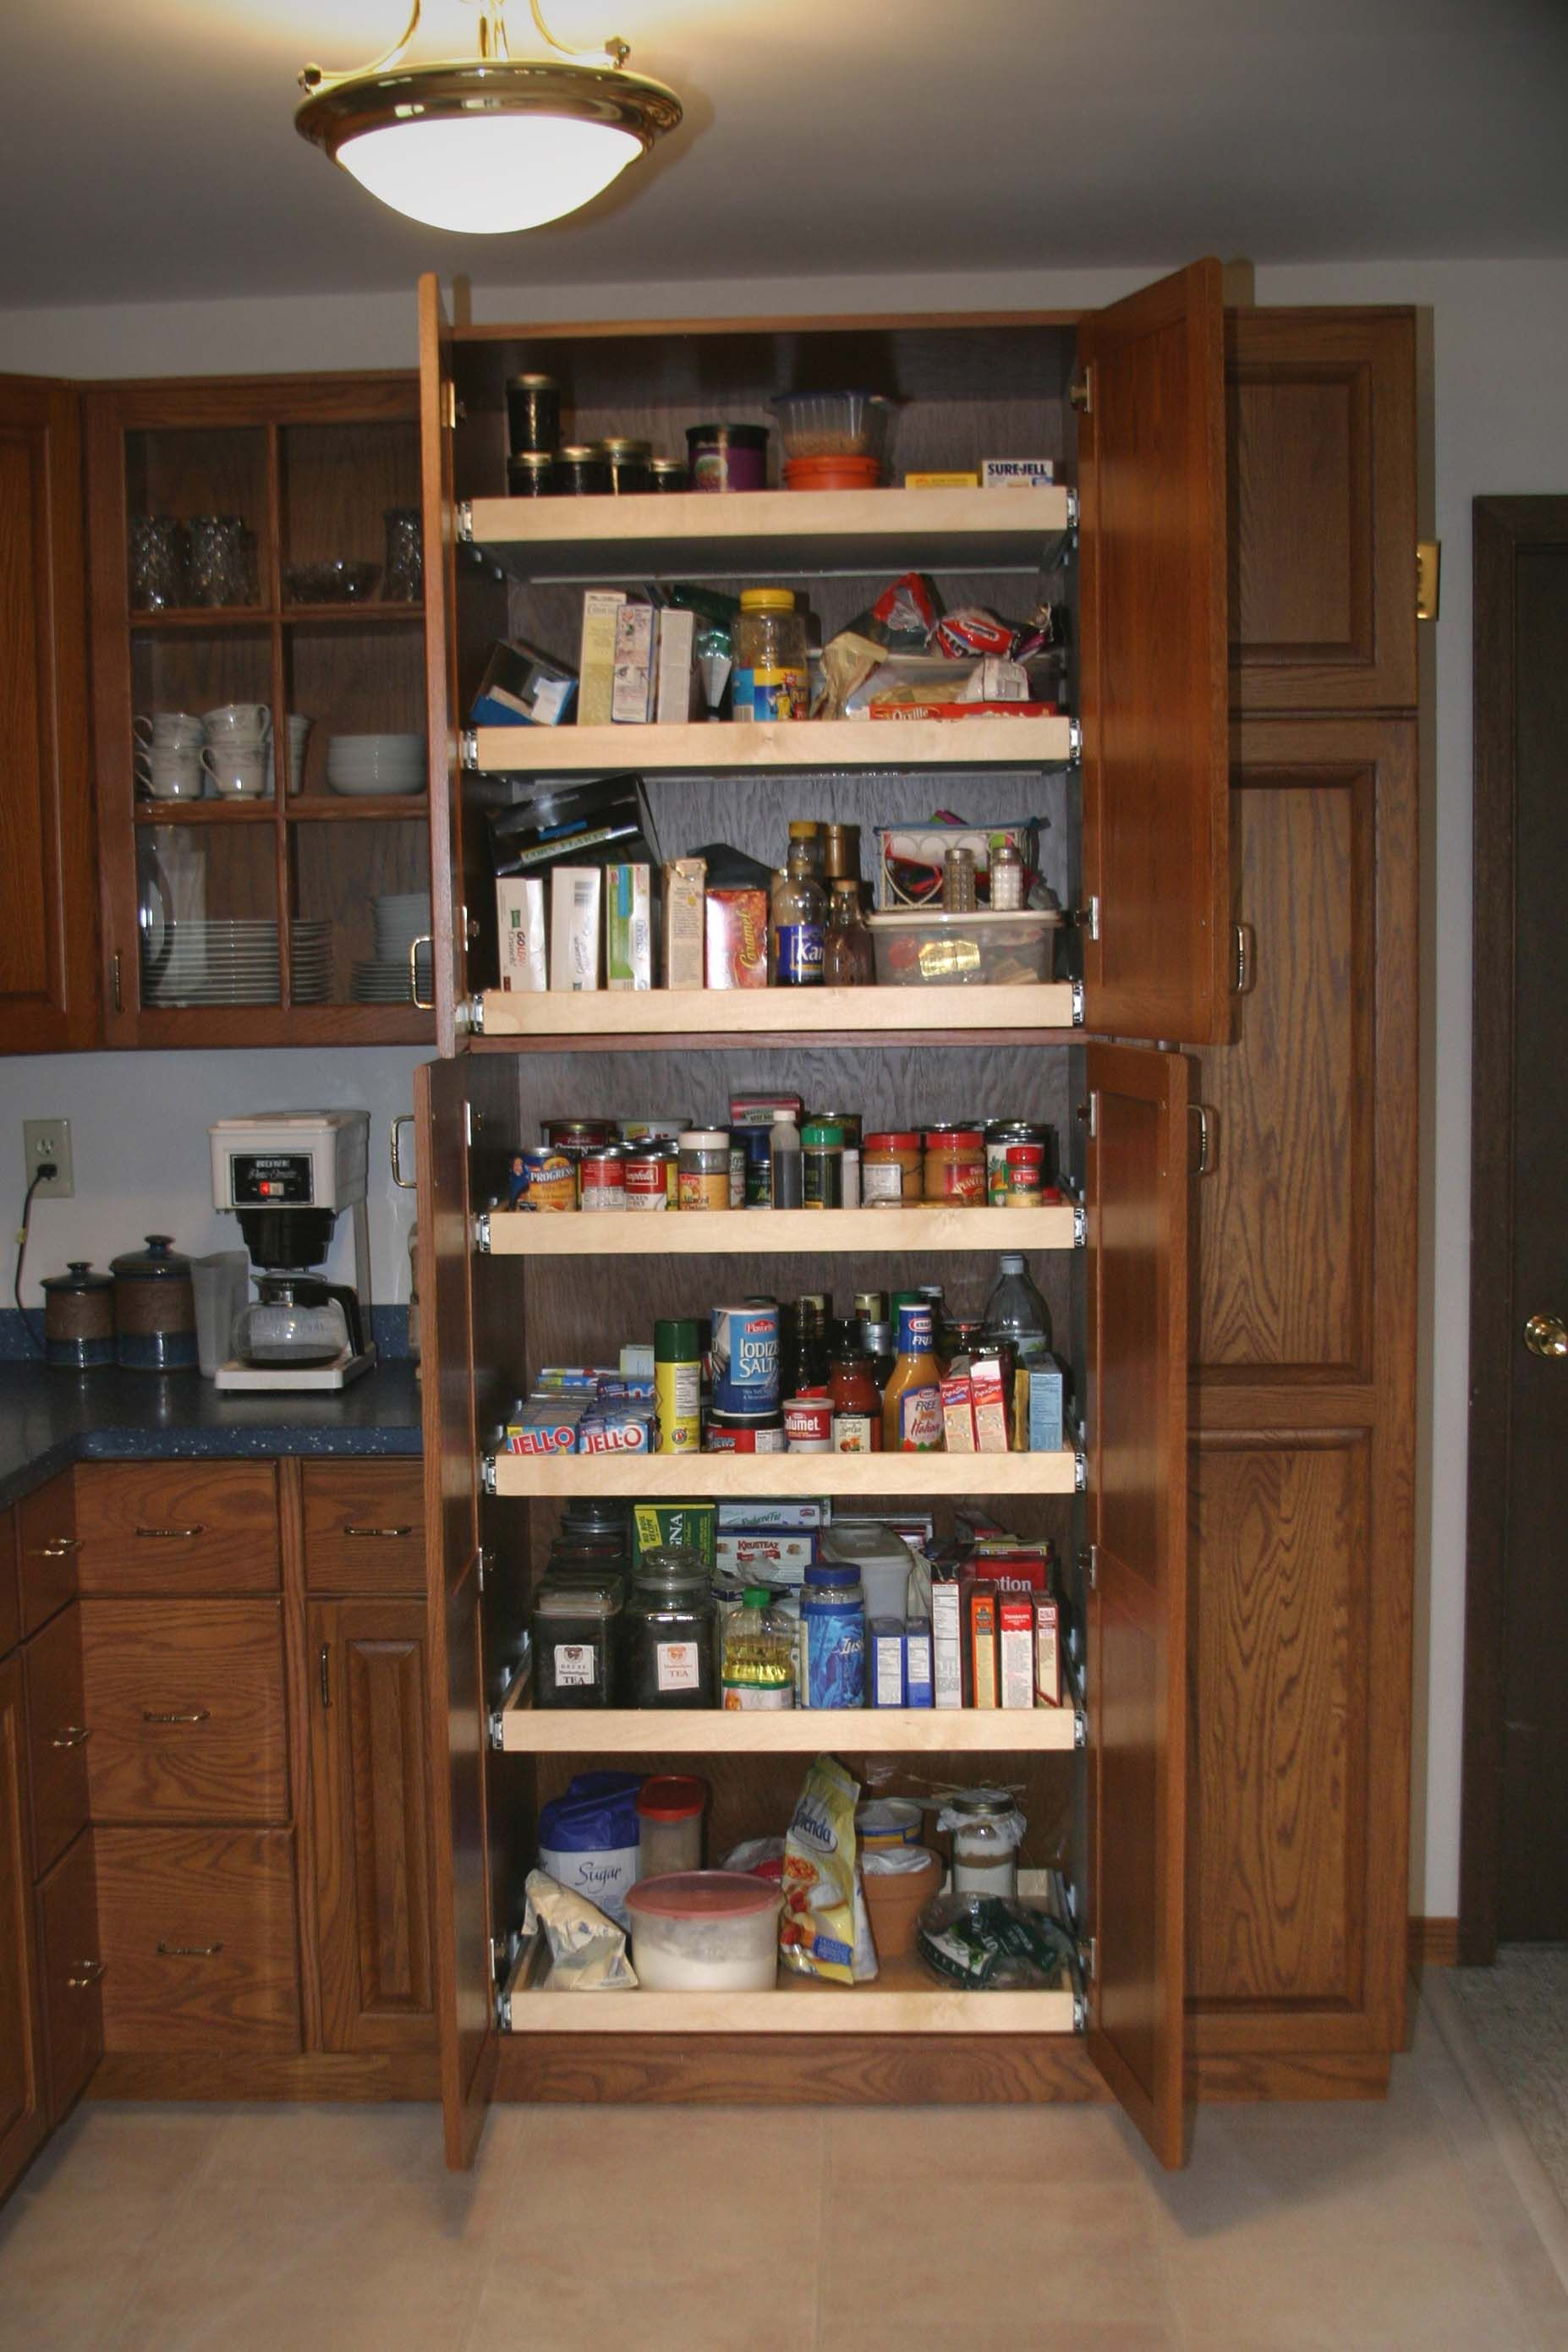 Kitchen Cabinets Pull Out Pantry Pantry This Pantry Is 32 Wide And 24 Inches Deep Cocinas Casas